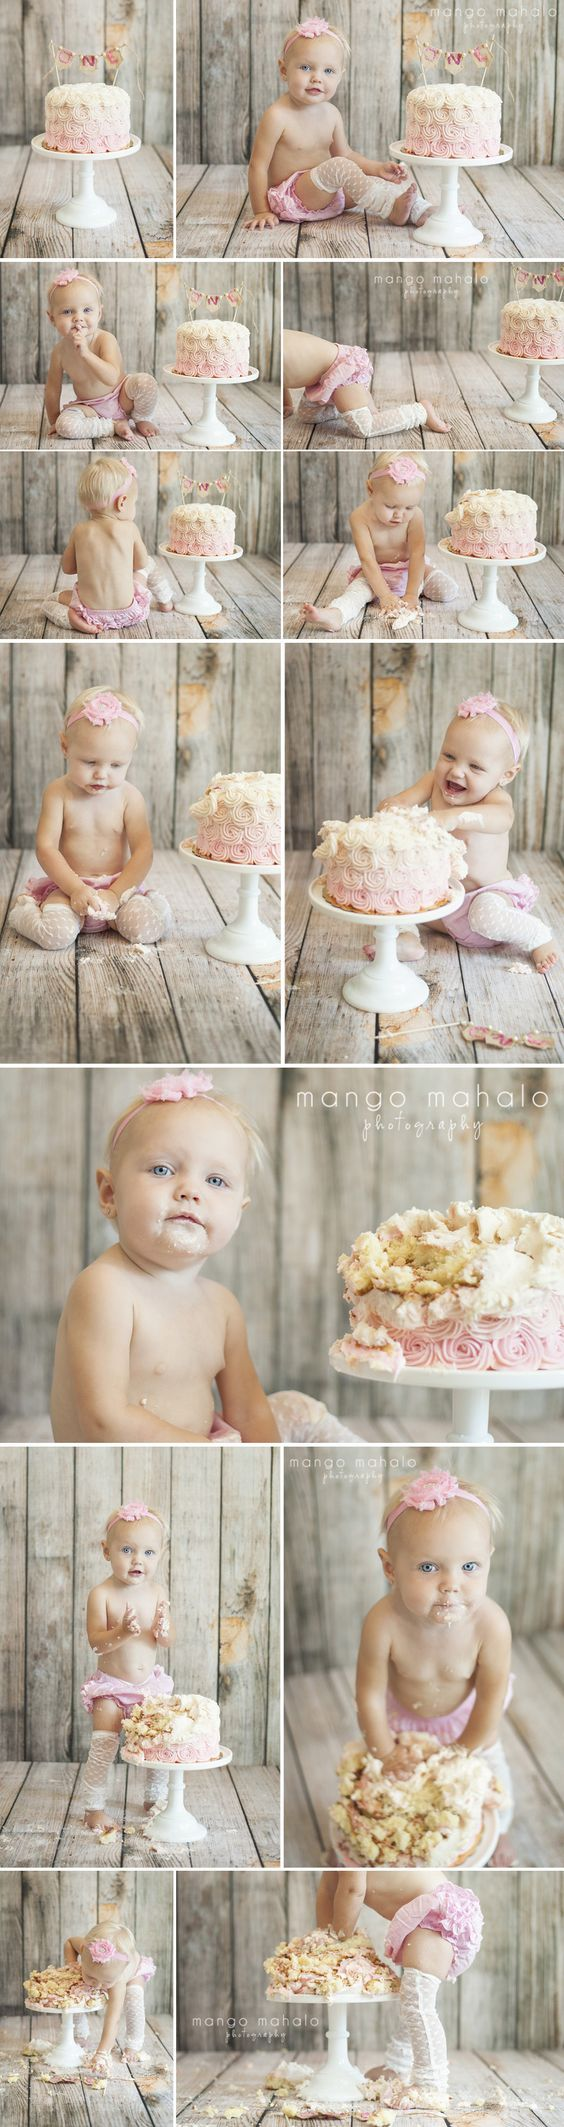 {oh girl, smash that cake} cake smash session by Mango Mahalo Photography by Michelle Anderson